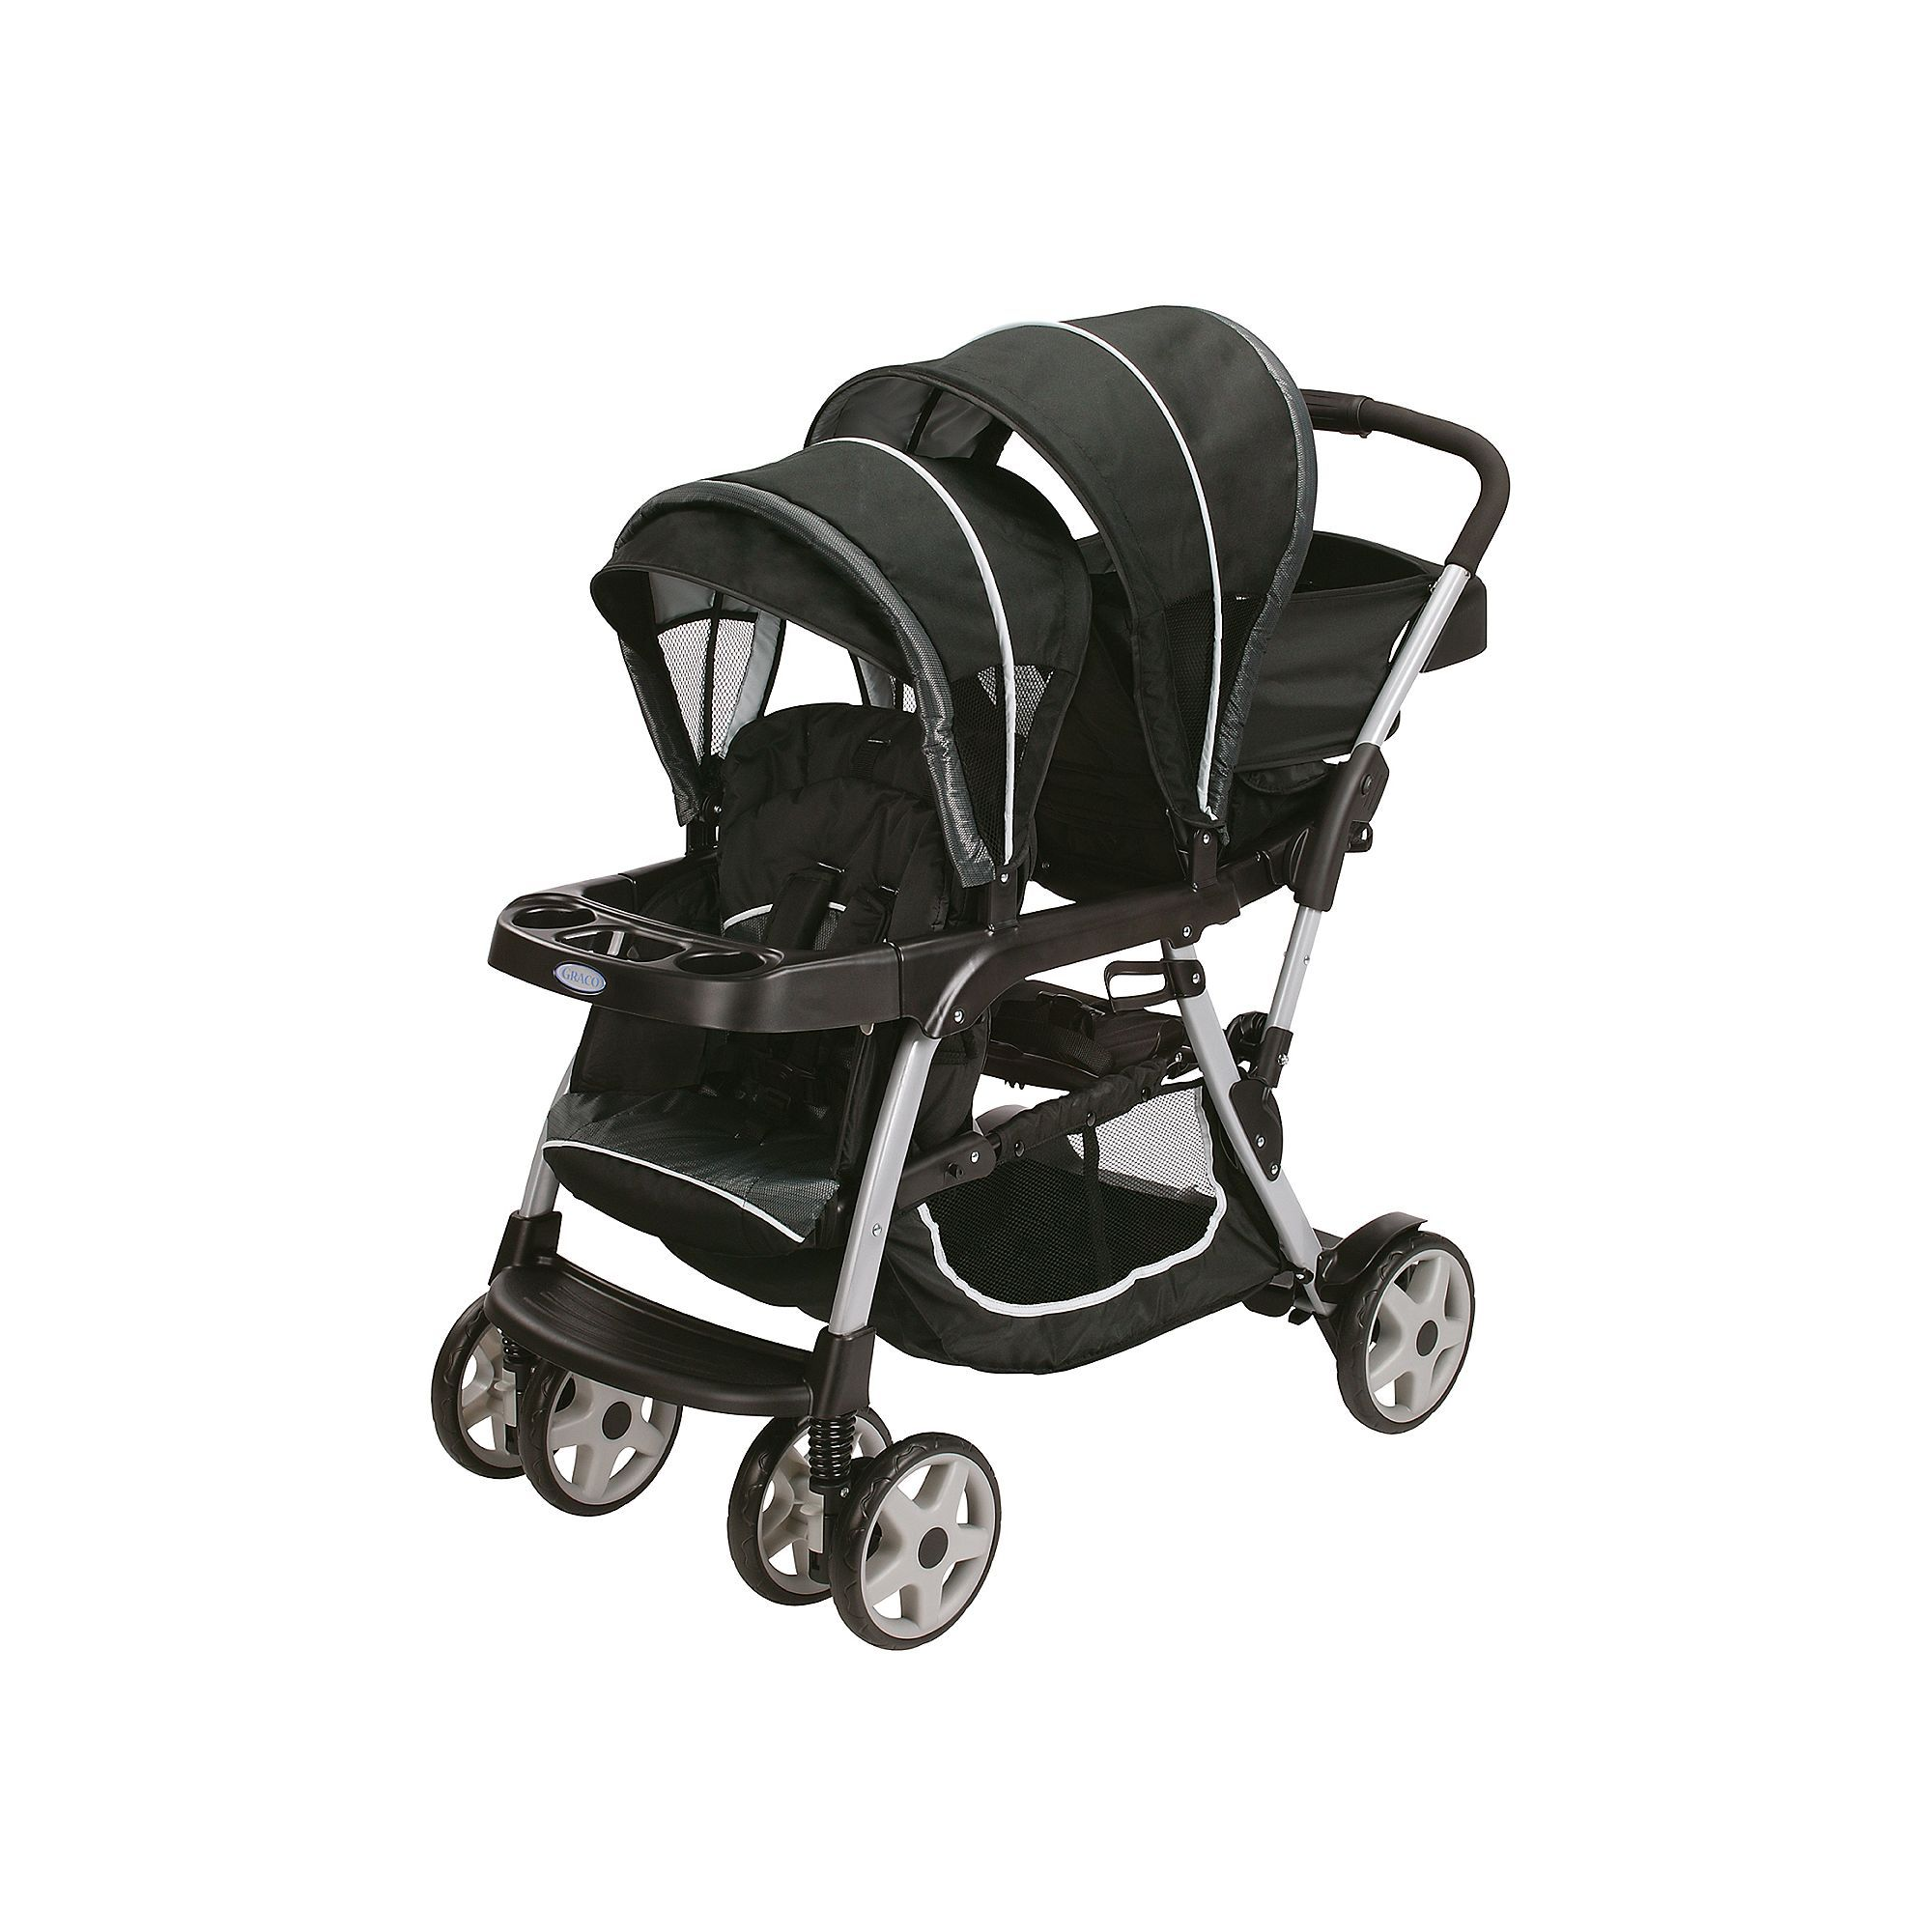 Graco Ready2Grow Duo Click Connect LX Stroller Best